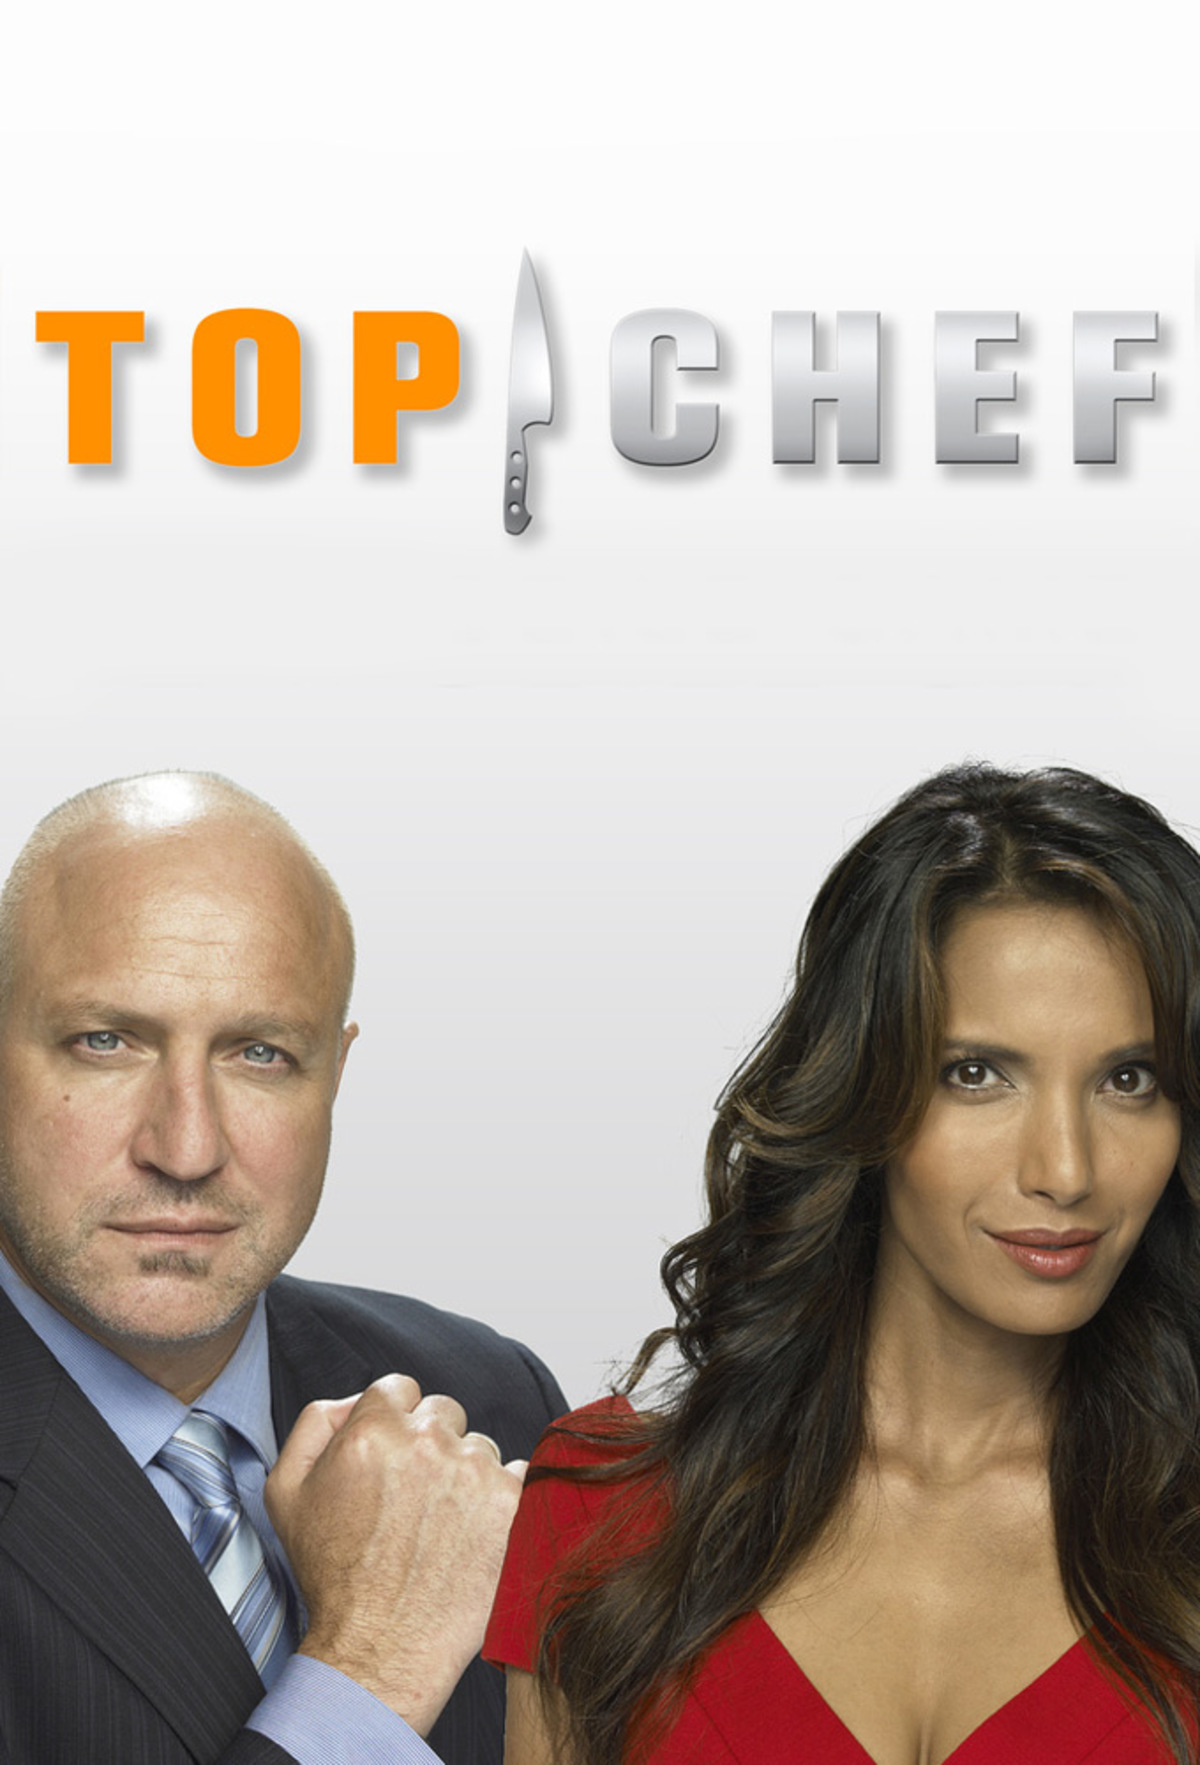 Top Chef - Season 17 Episode 13 - Parma